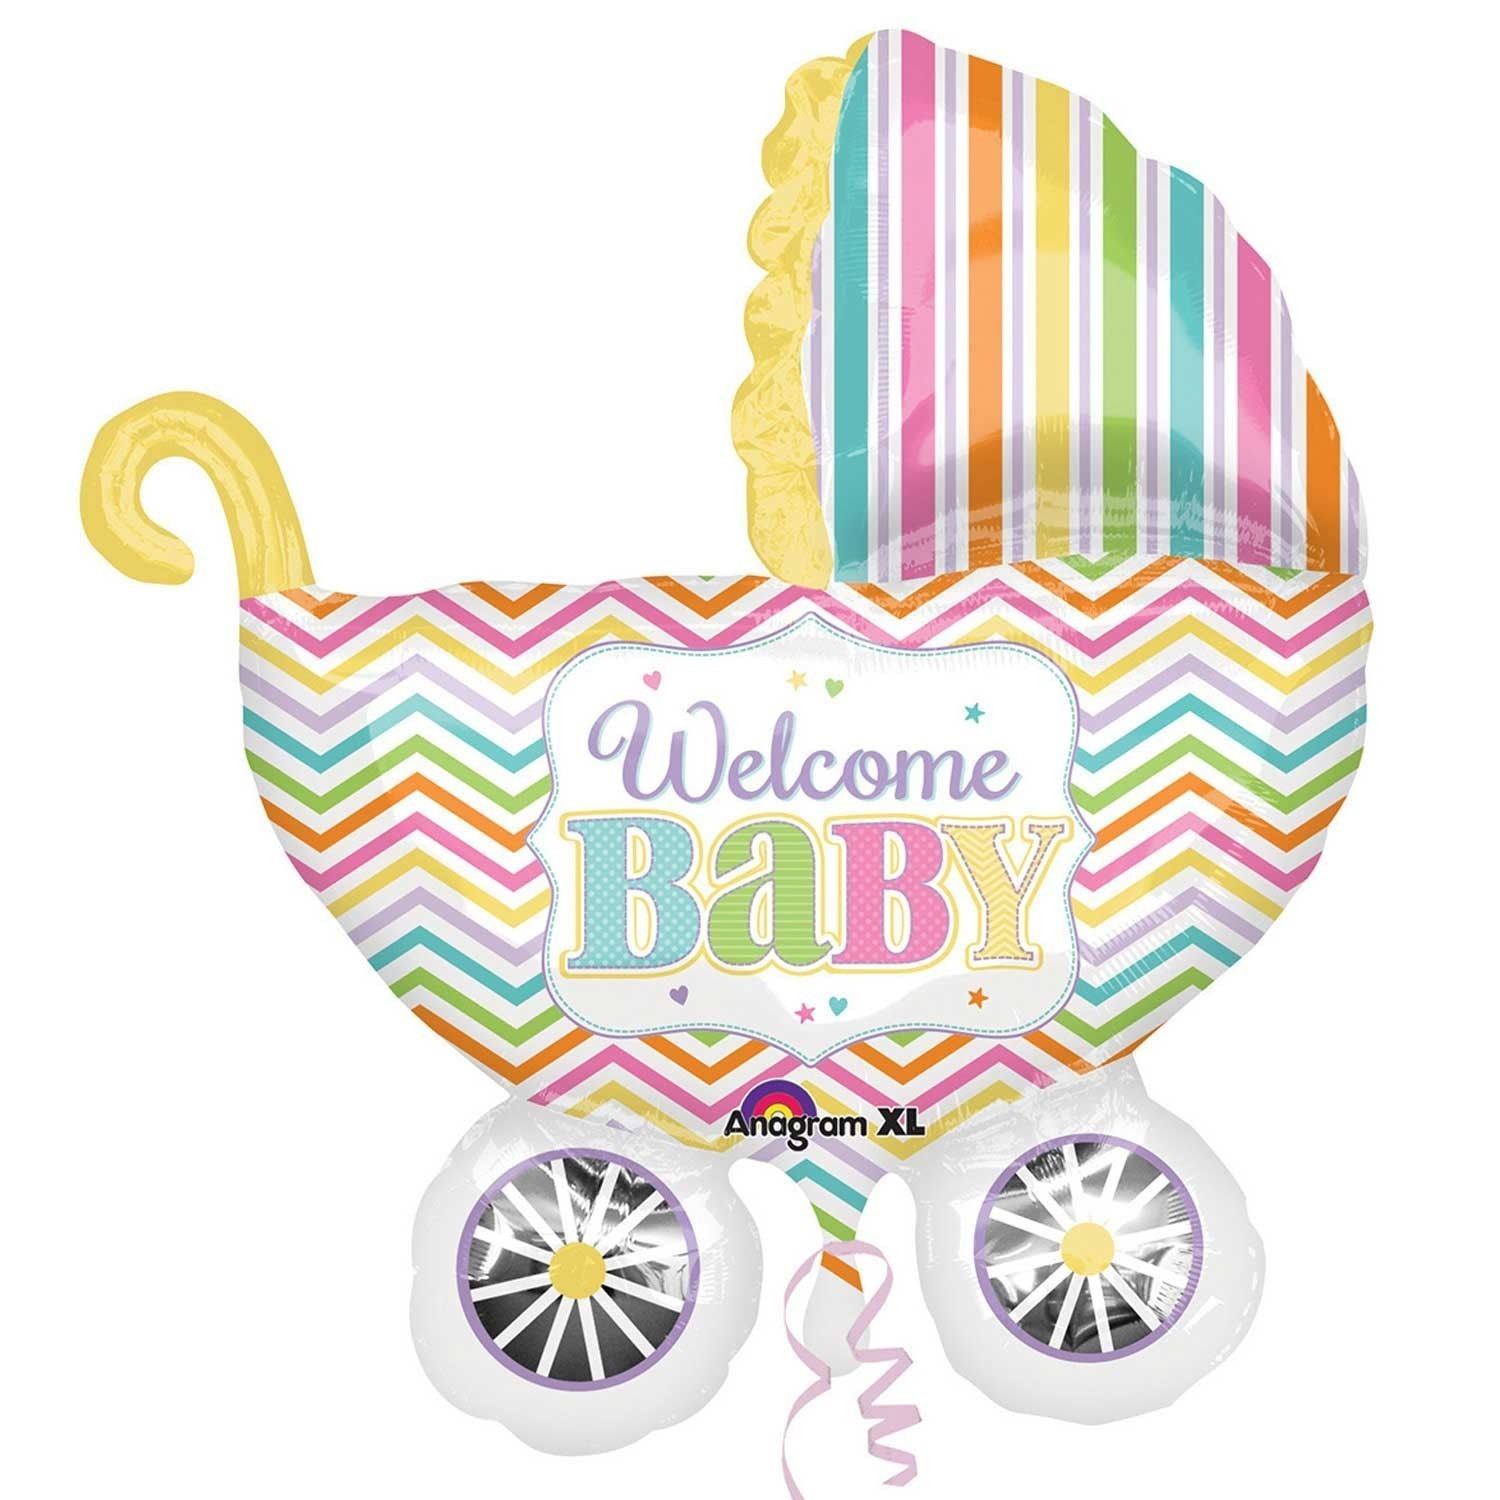 Balon folie figurina carucior welcome baby